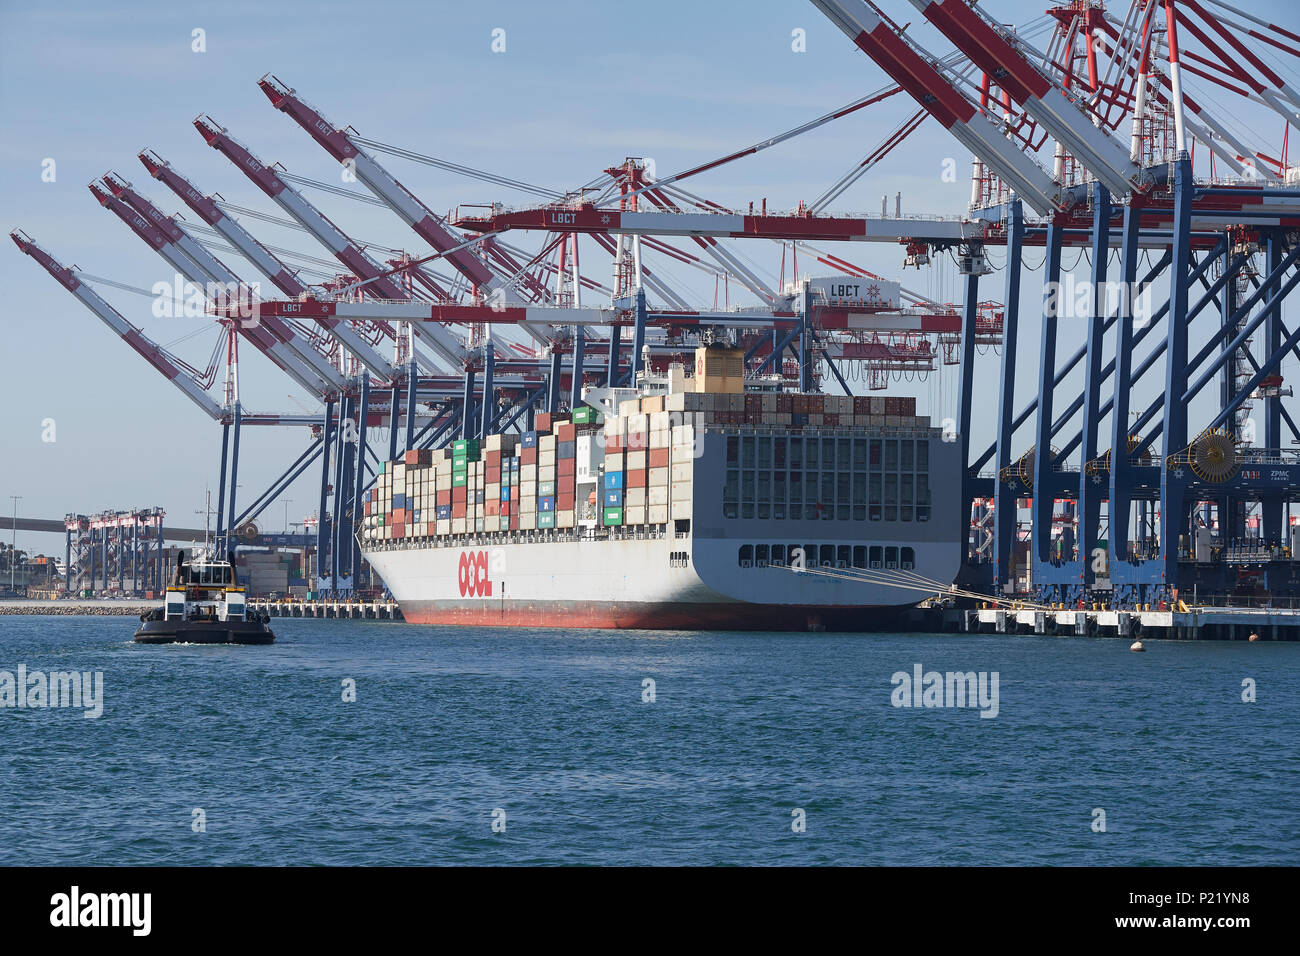 Container Ship, OOCL LONDON, About To Depart The Long Beach Container Terminal, A Tractor Tug Approaching The Ship. Port Of Long Beach, USA. - Stock Image